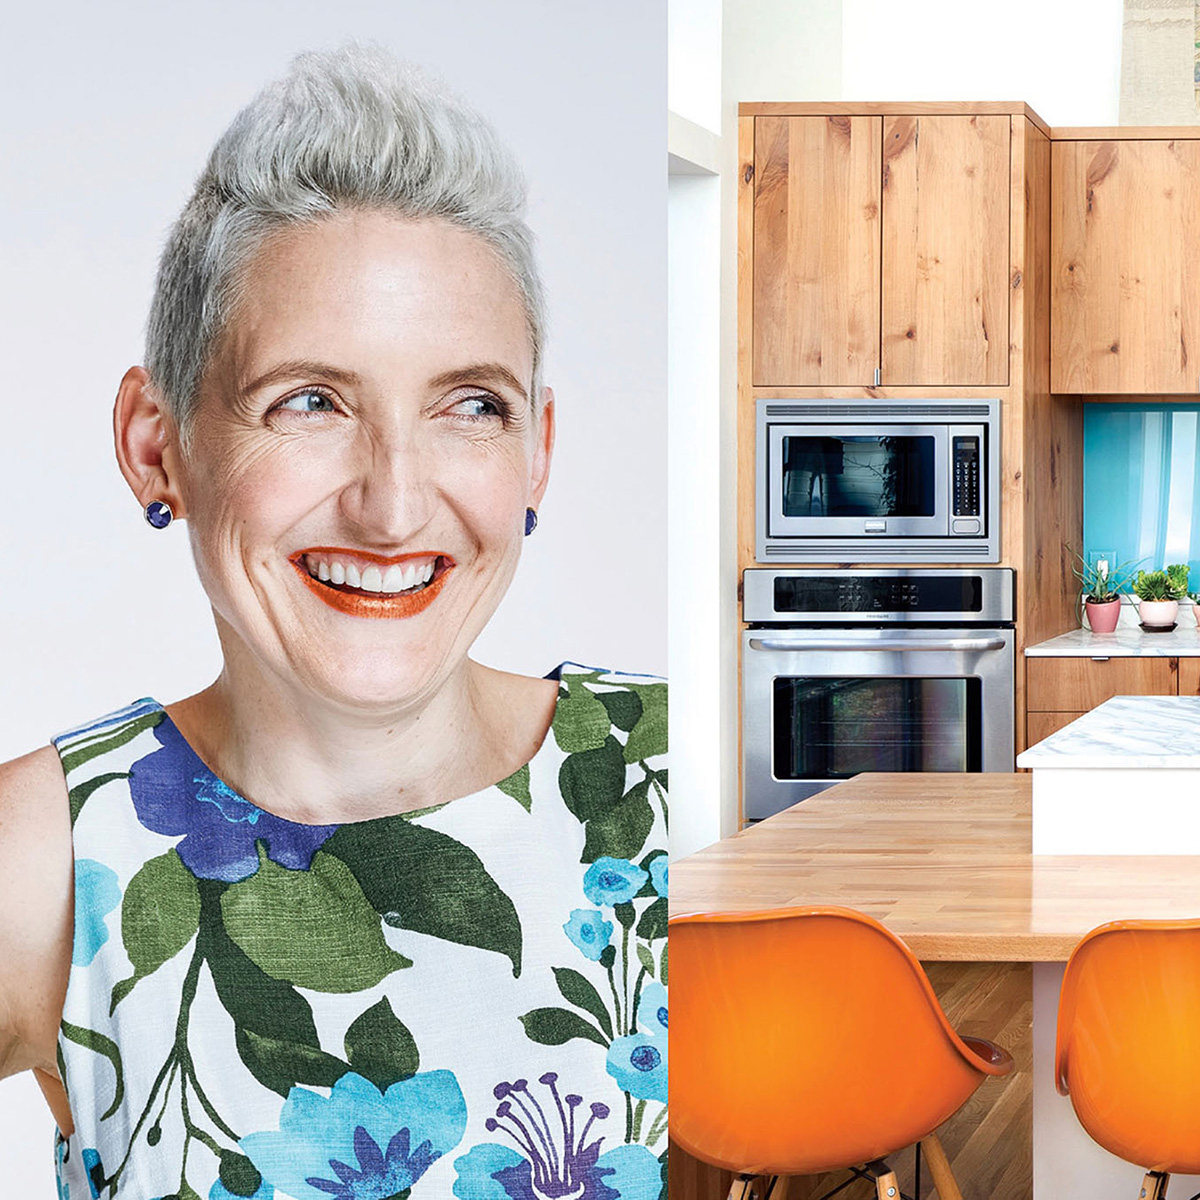 Woman laughing in her kitchen.